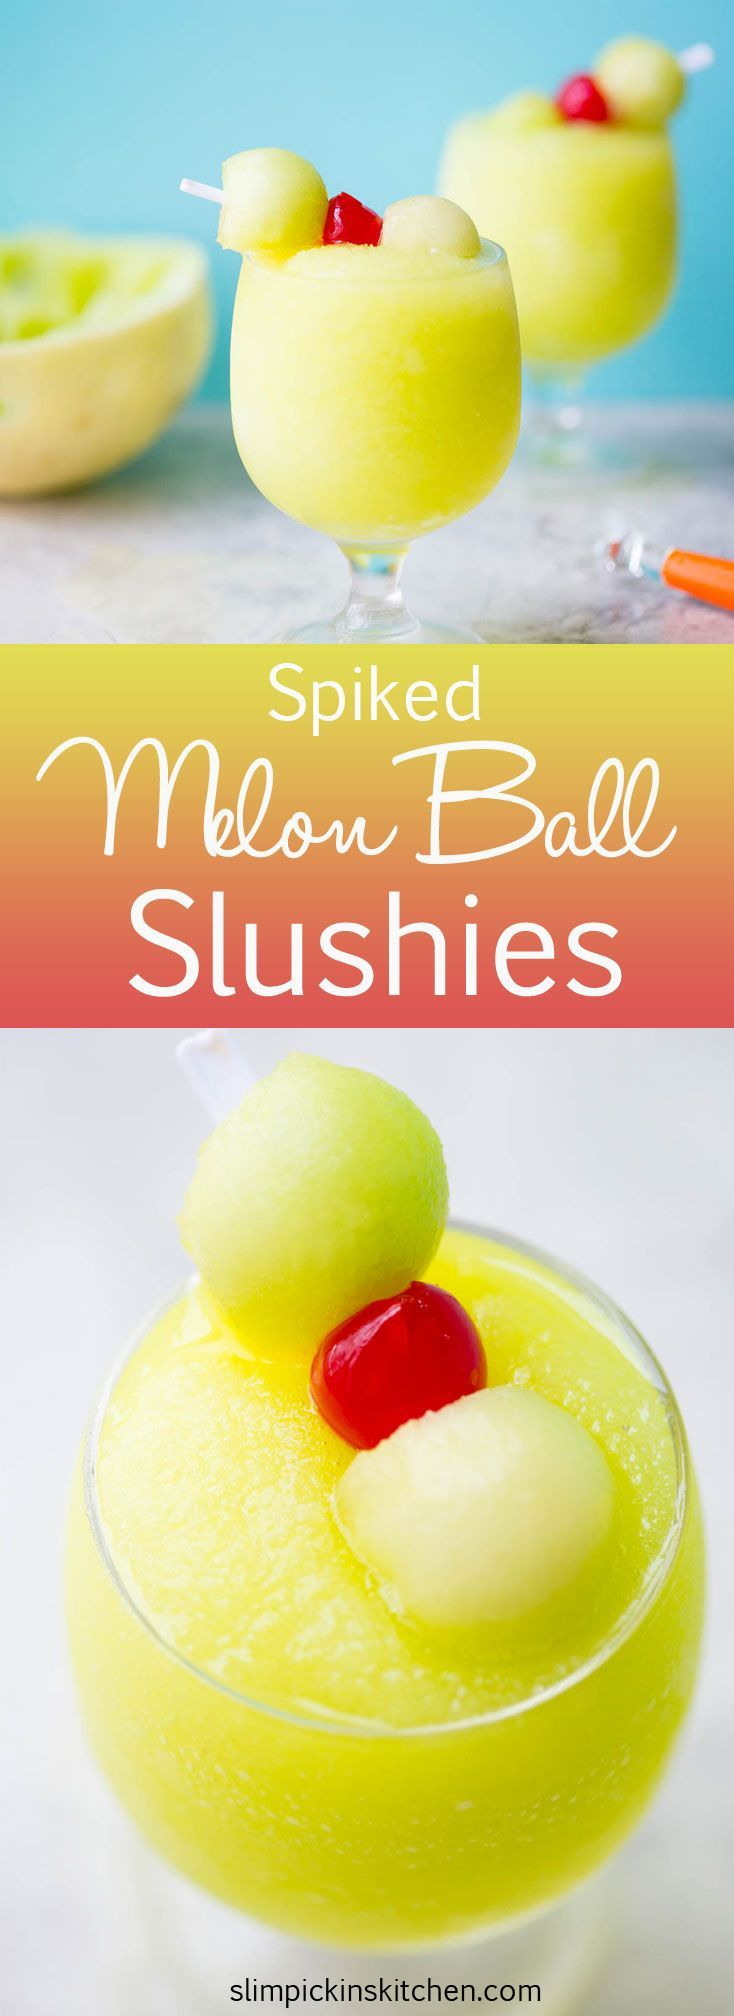 Spiked Melon Ball Slushies: A frozen twist on the classic melon ball drink made with freshly frozen Honeydew, melon liquor, melon vodka, and sweet pineapple juice.